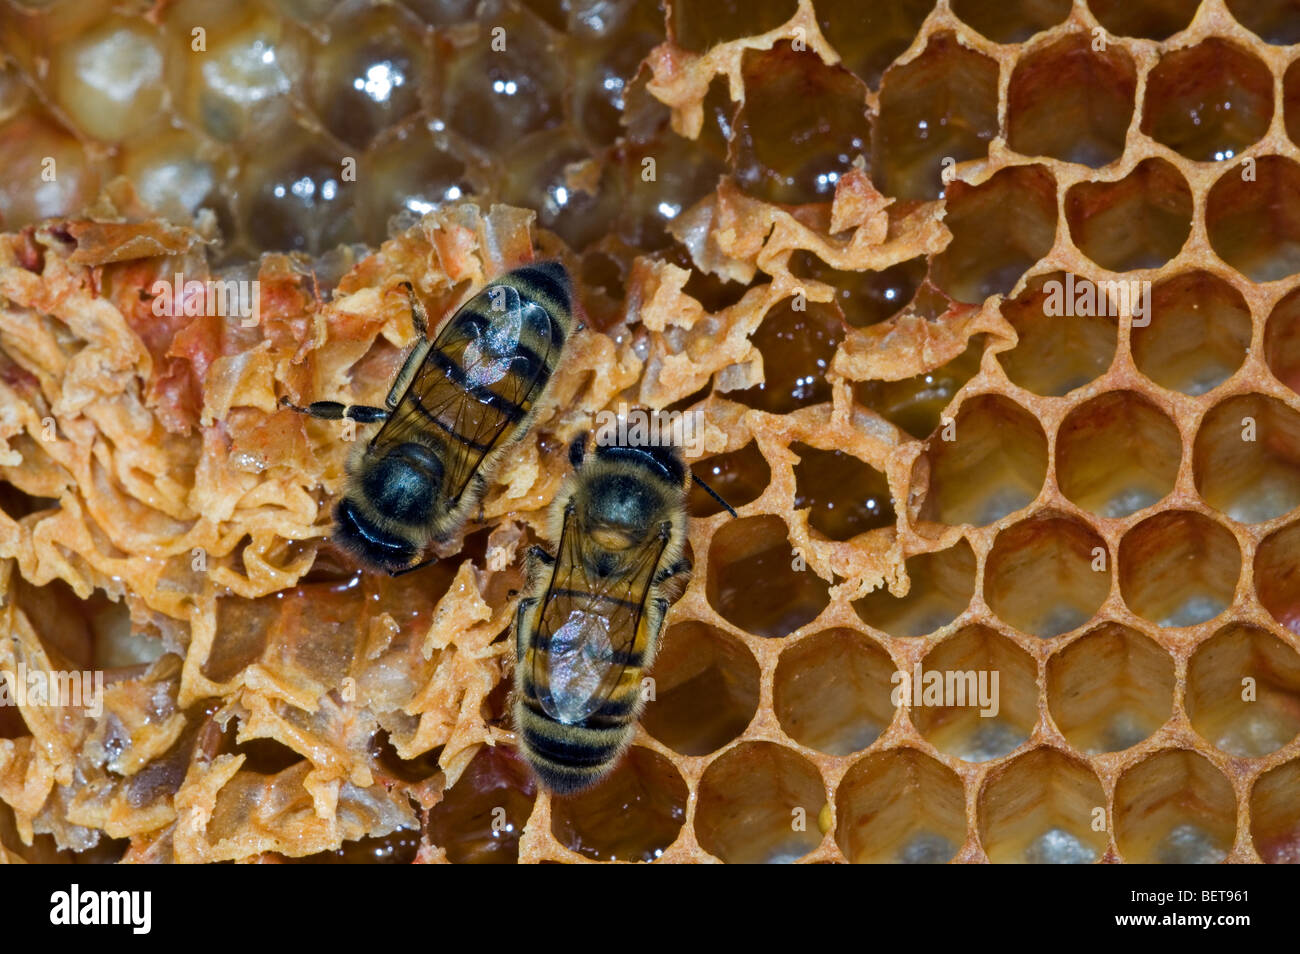 Honey bee worker (Apis mellifera) on comb showing decapped and uncapped cells inside hive, Belgium - Stock Image